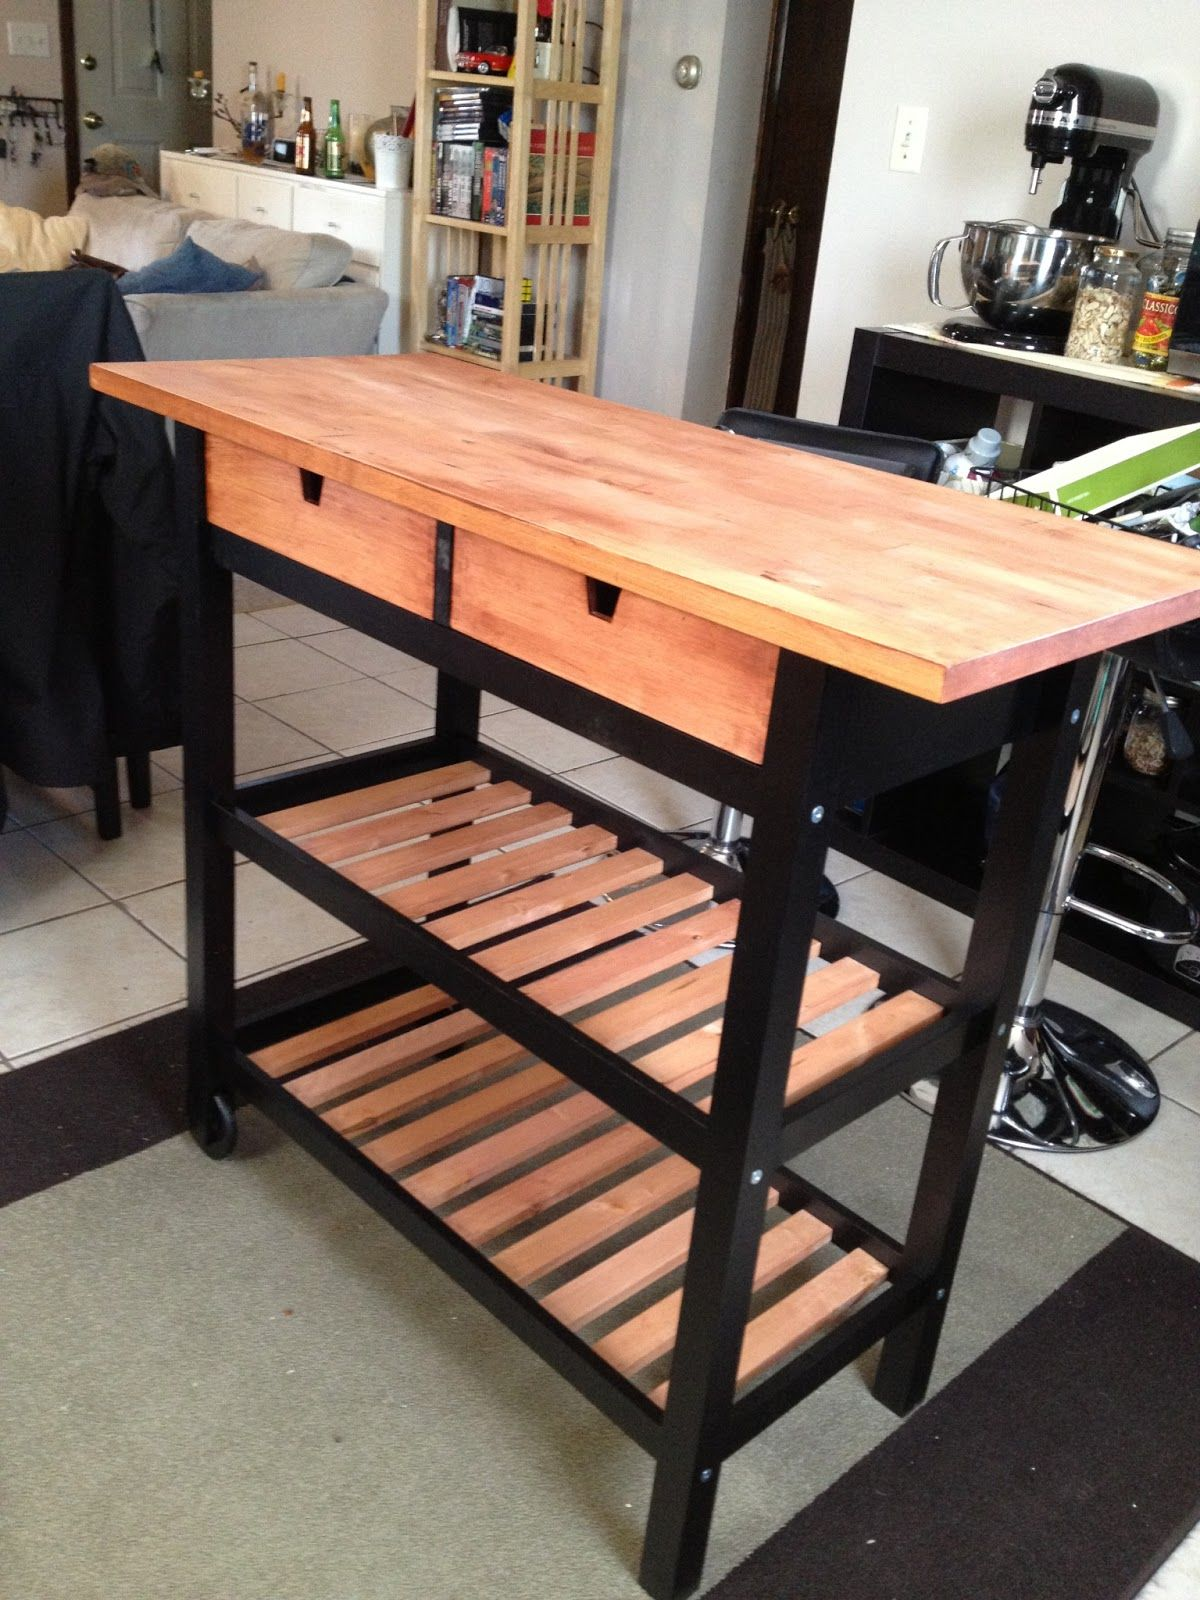 Ikea kitchen cart painted - Find This Pin And More On Diy Ikea Forhoja Norden Table Kitchen Cart